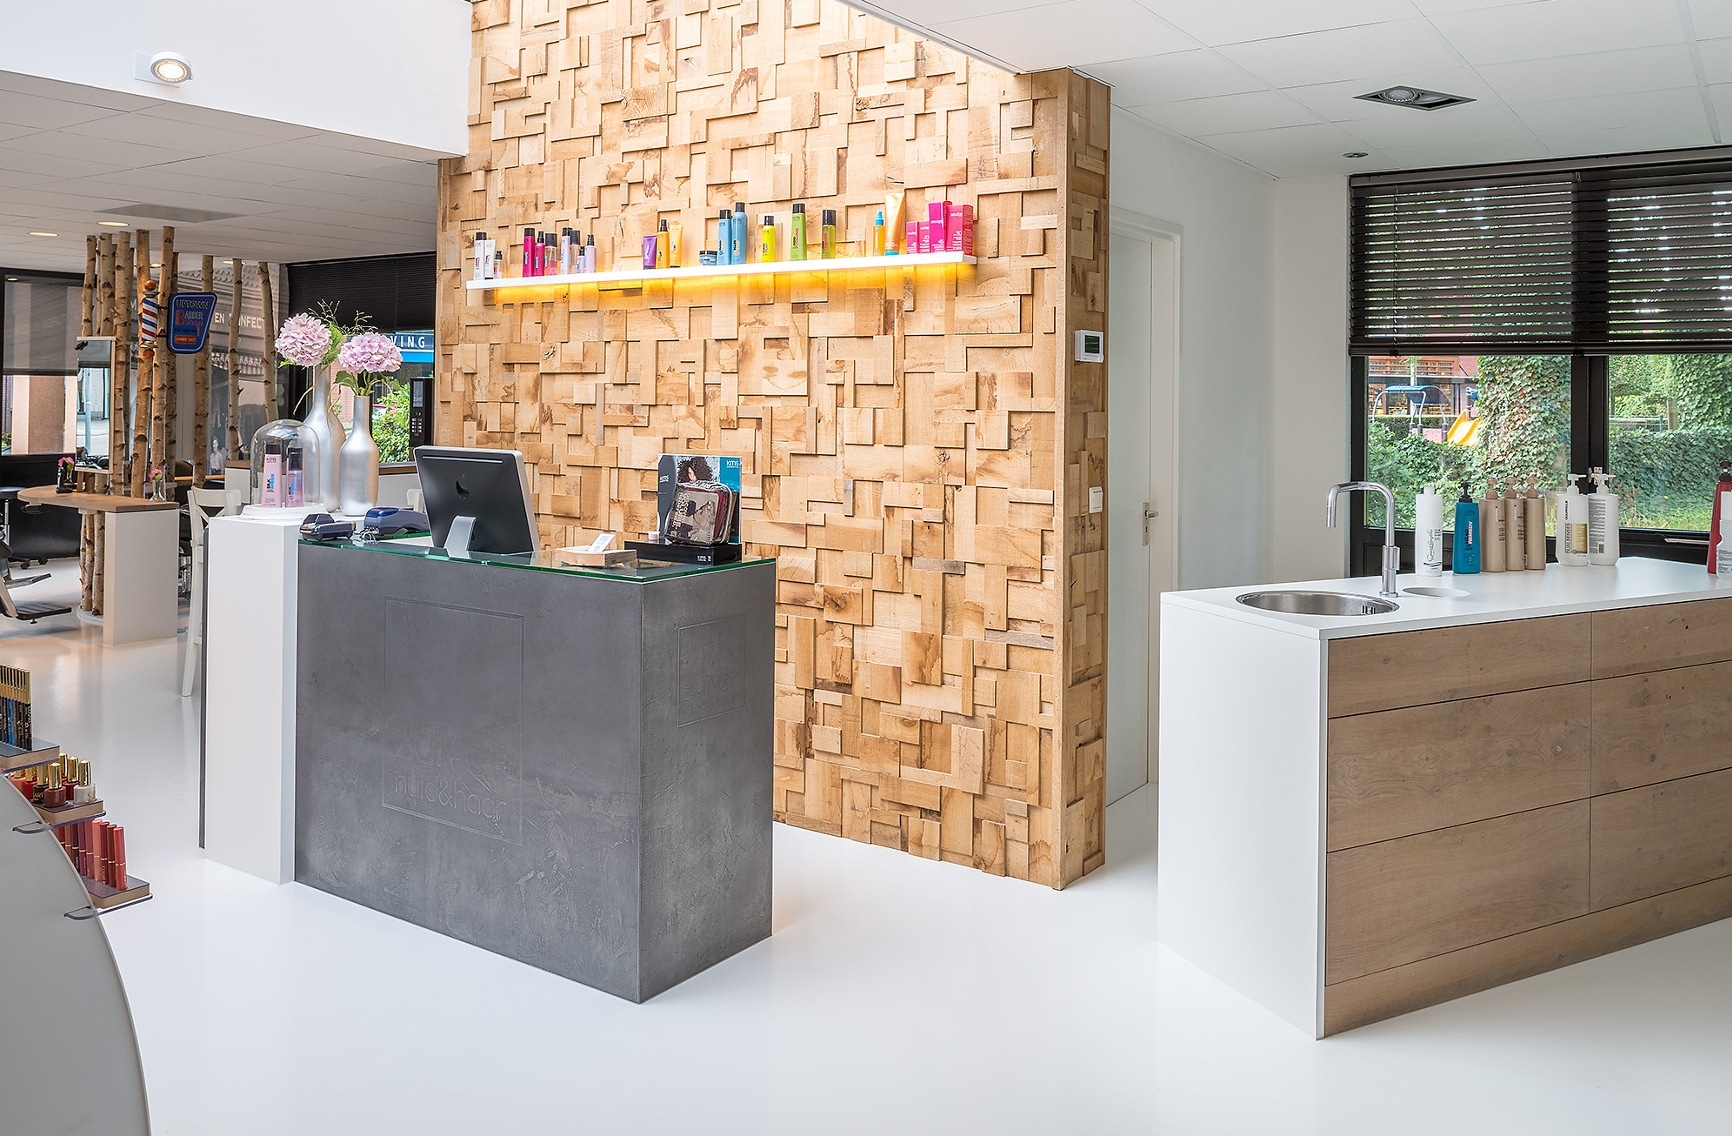 Zuiver huid haar beautysalon borne maccdesign for Kappers interieur